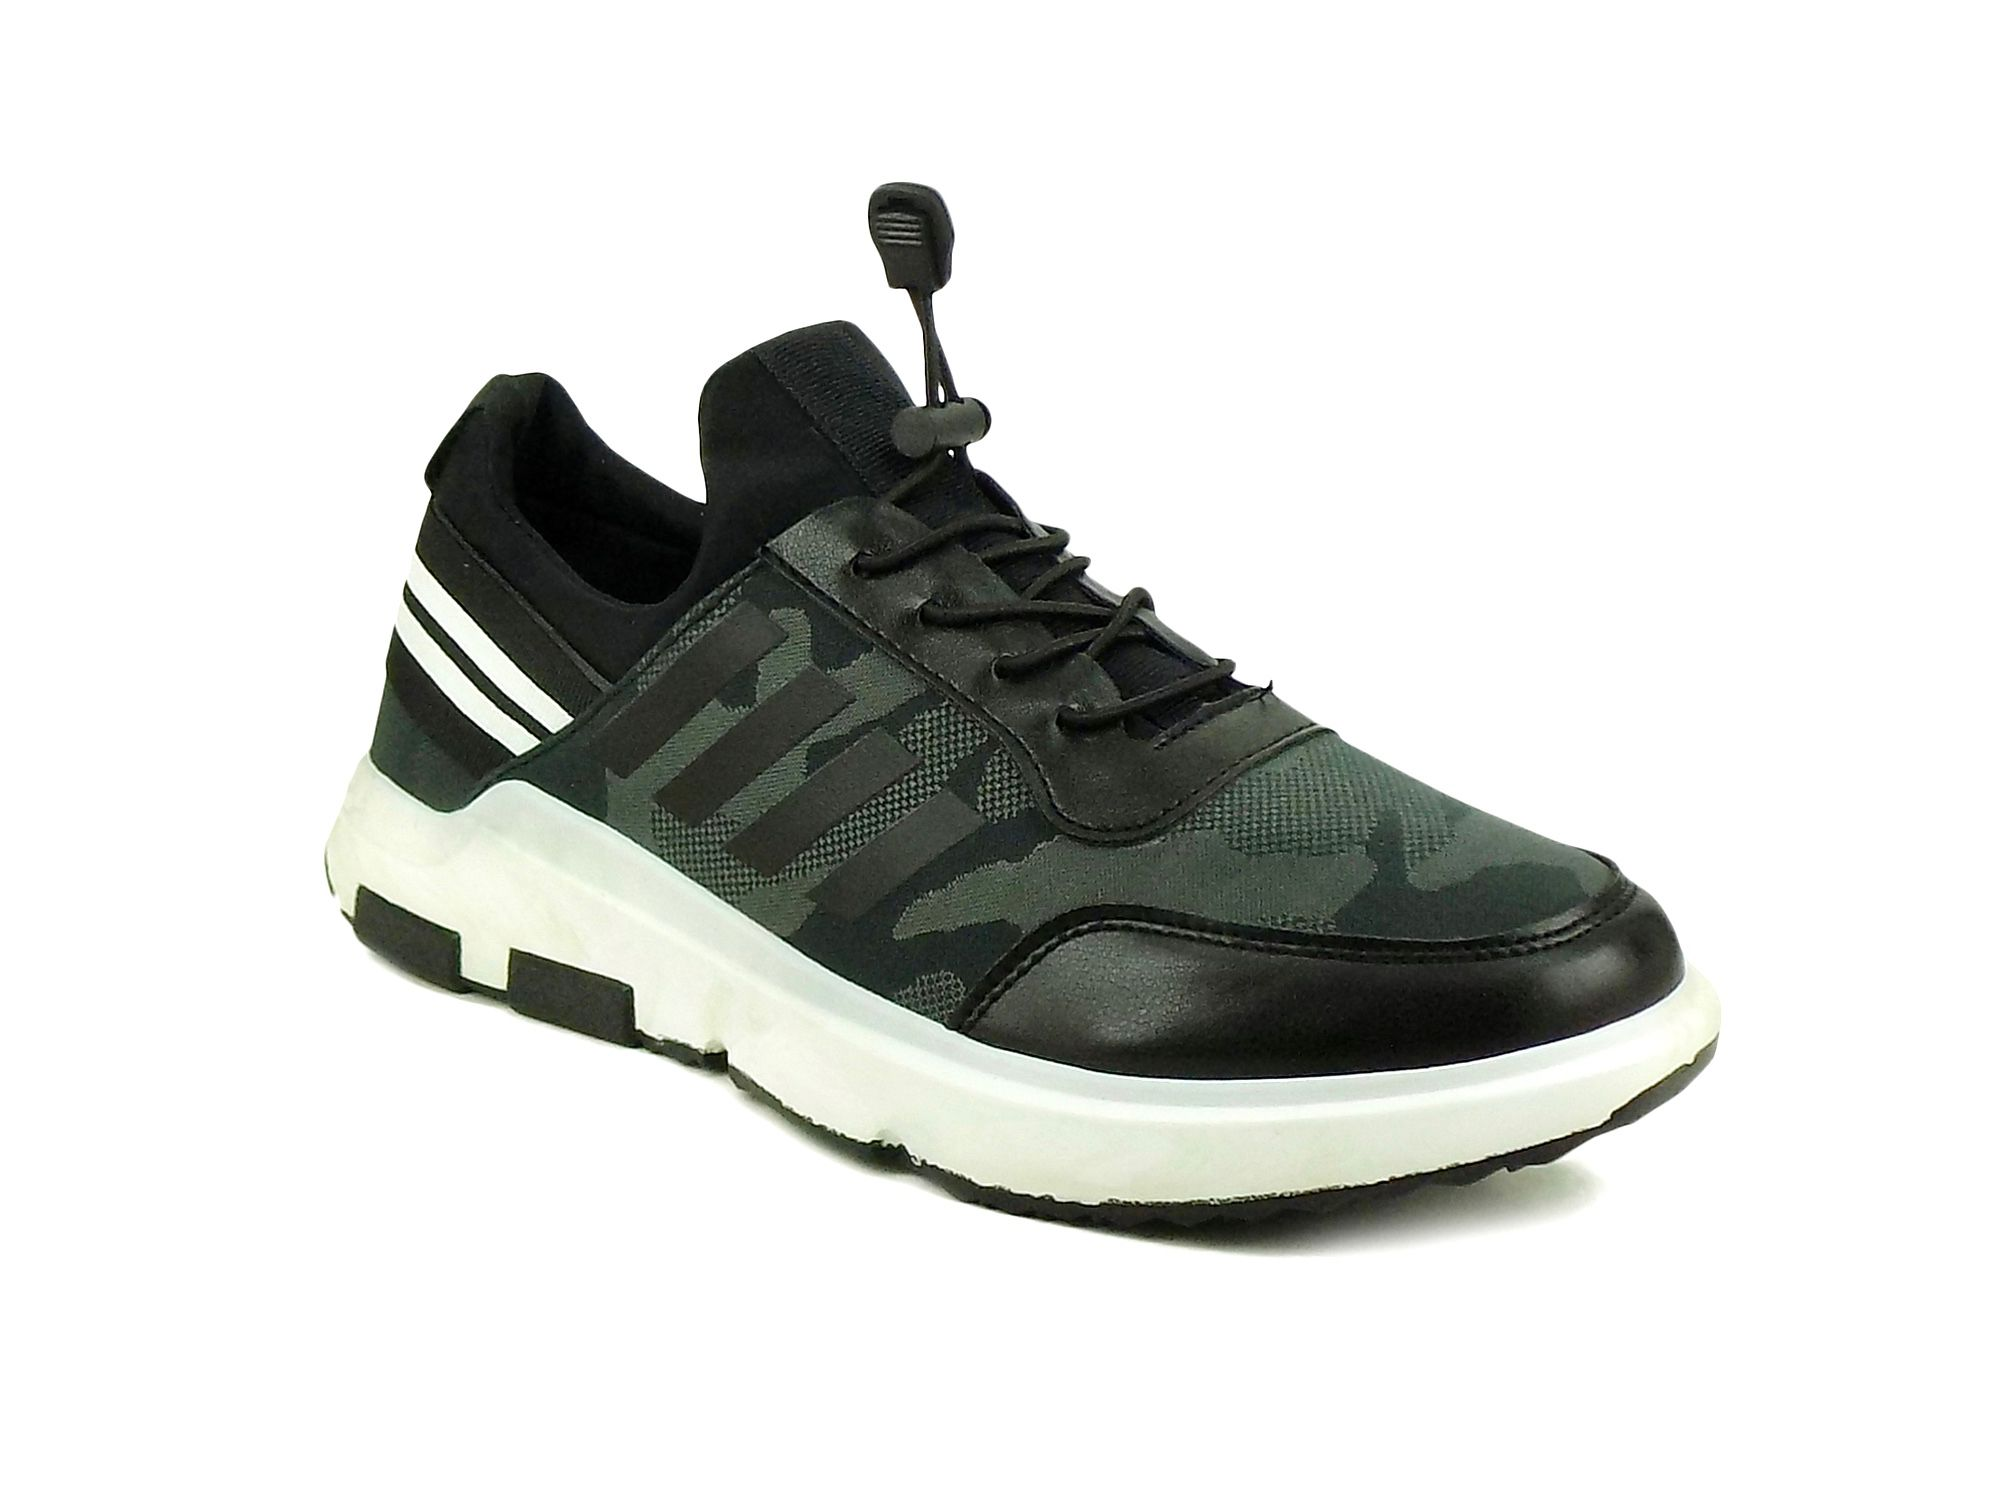 9730ca06c0d Ripley Valkyrie Series Sneakers Black Casual Shoes - Buy Ripley Valkyrie  Series Sneakers Black Casual Shoes Online at Best Prices in India on  Snapdeal